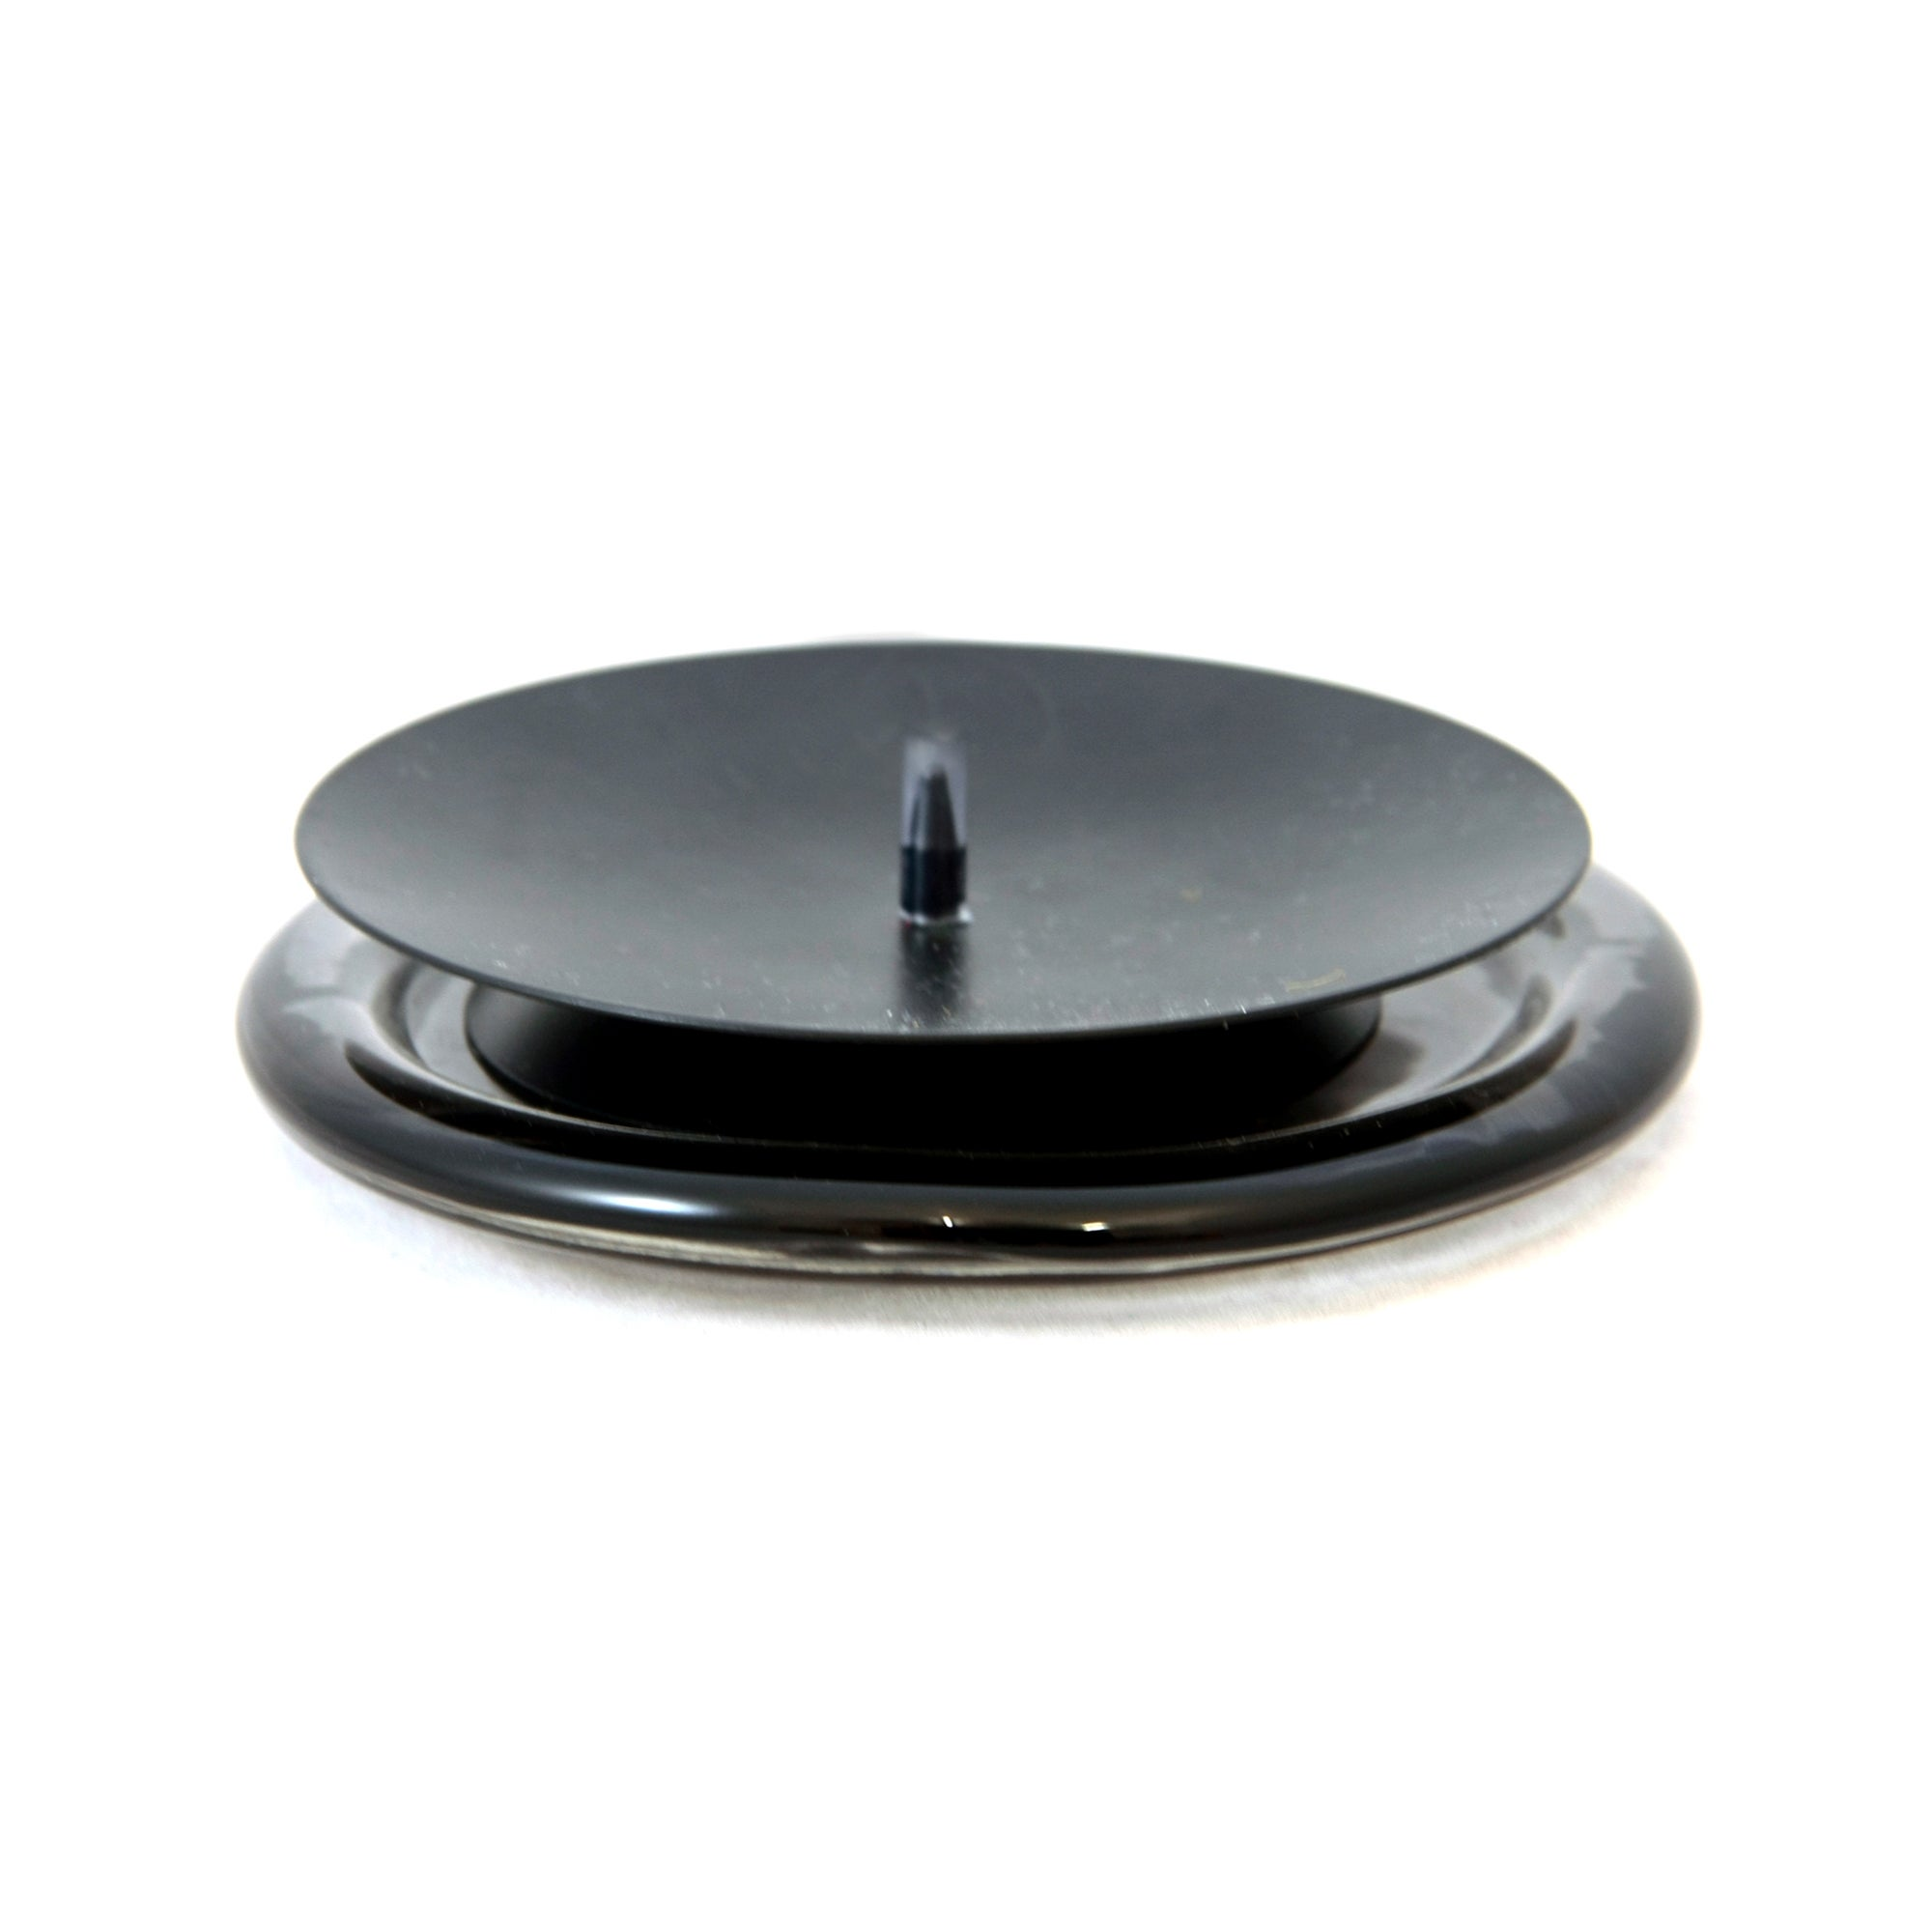 Black Metal Candle Plate with Spike